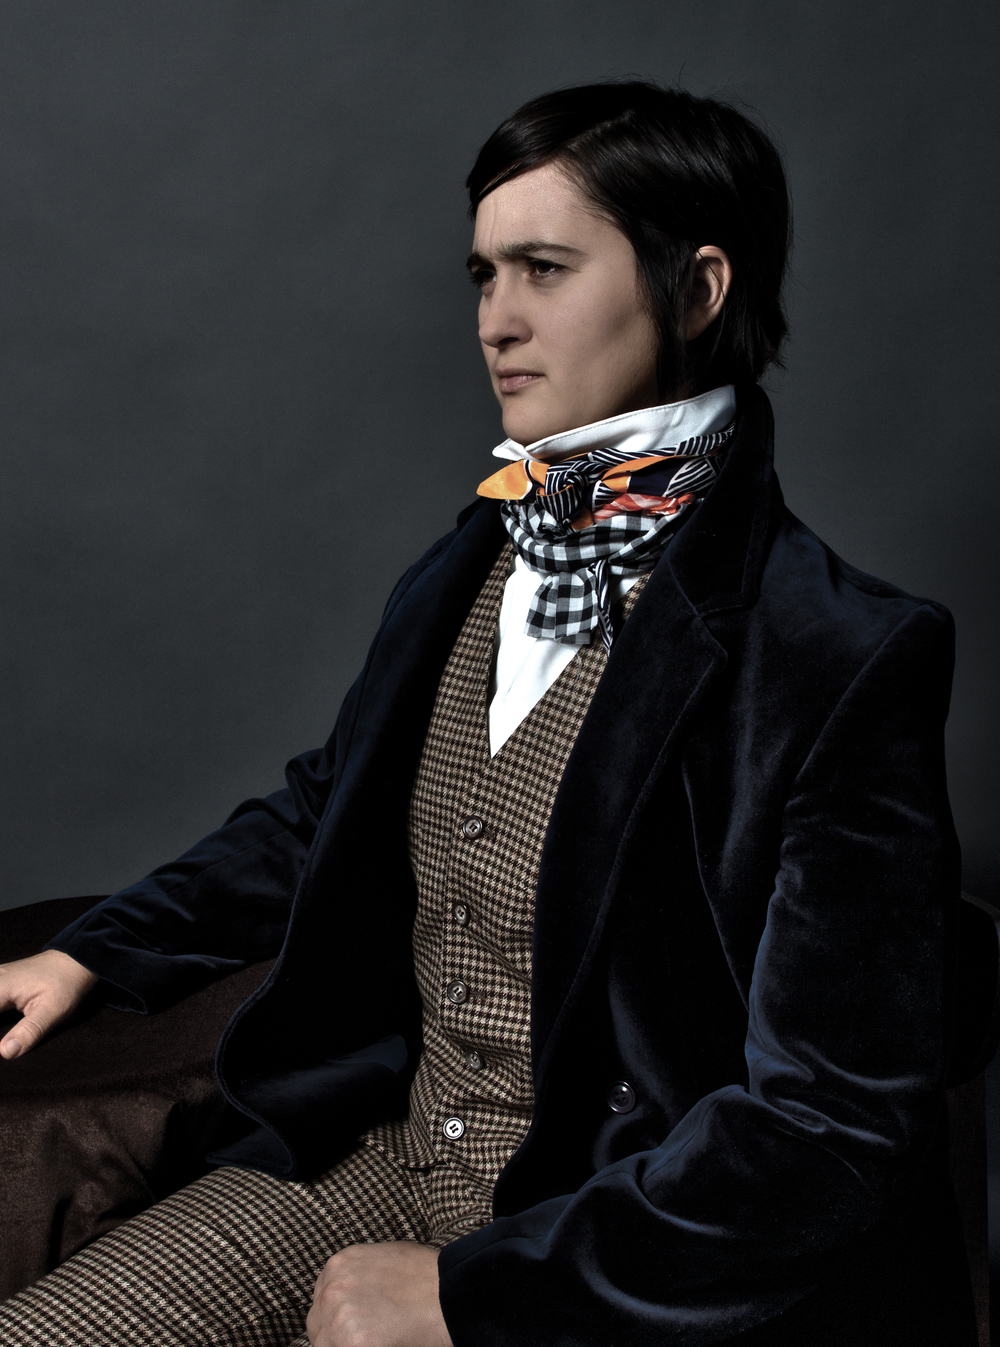 Lauren Esposito as Charles Darwin                                                Photo by Lauren Tabak Styling & Assisting by Danielle Mallory